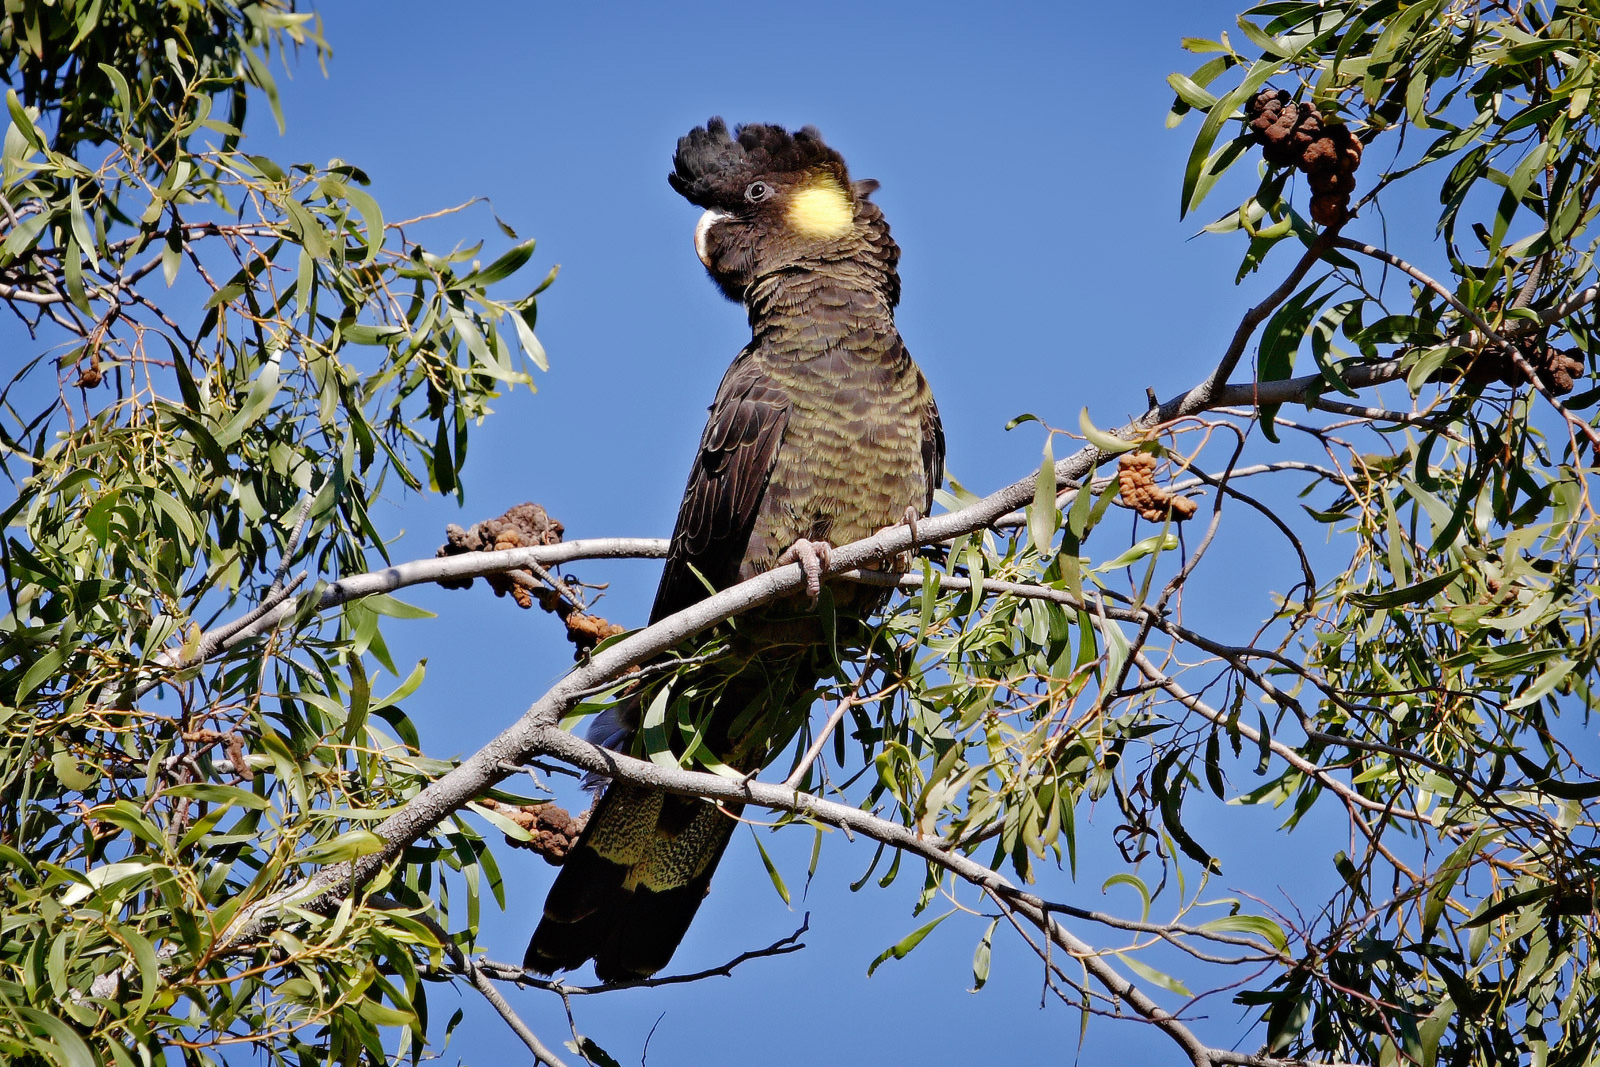 File:Yellow-tailed black cockatoo.jpg - Wikimedia Commons